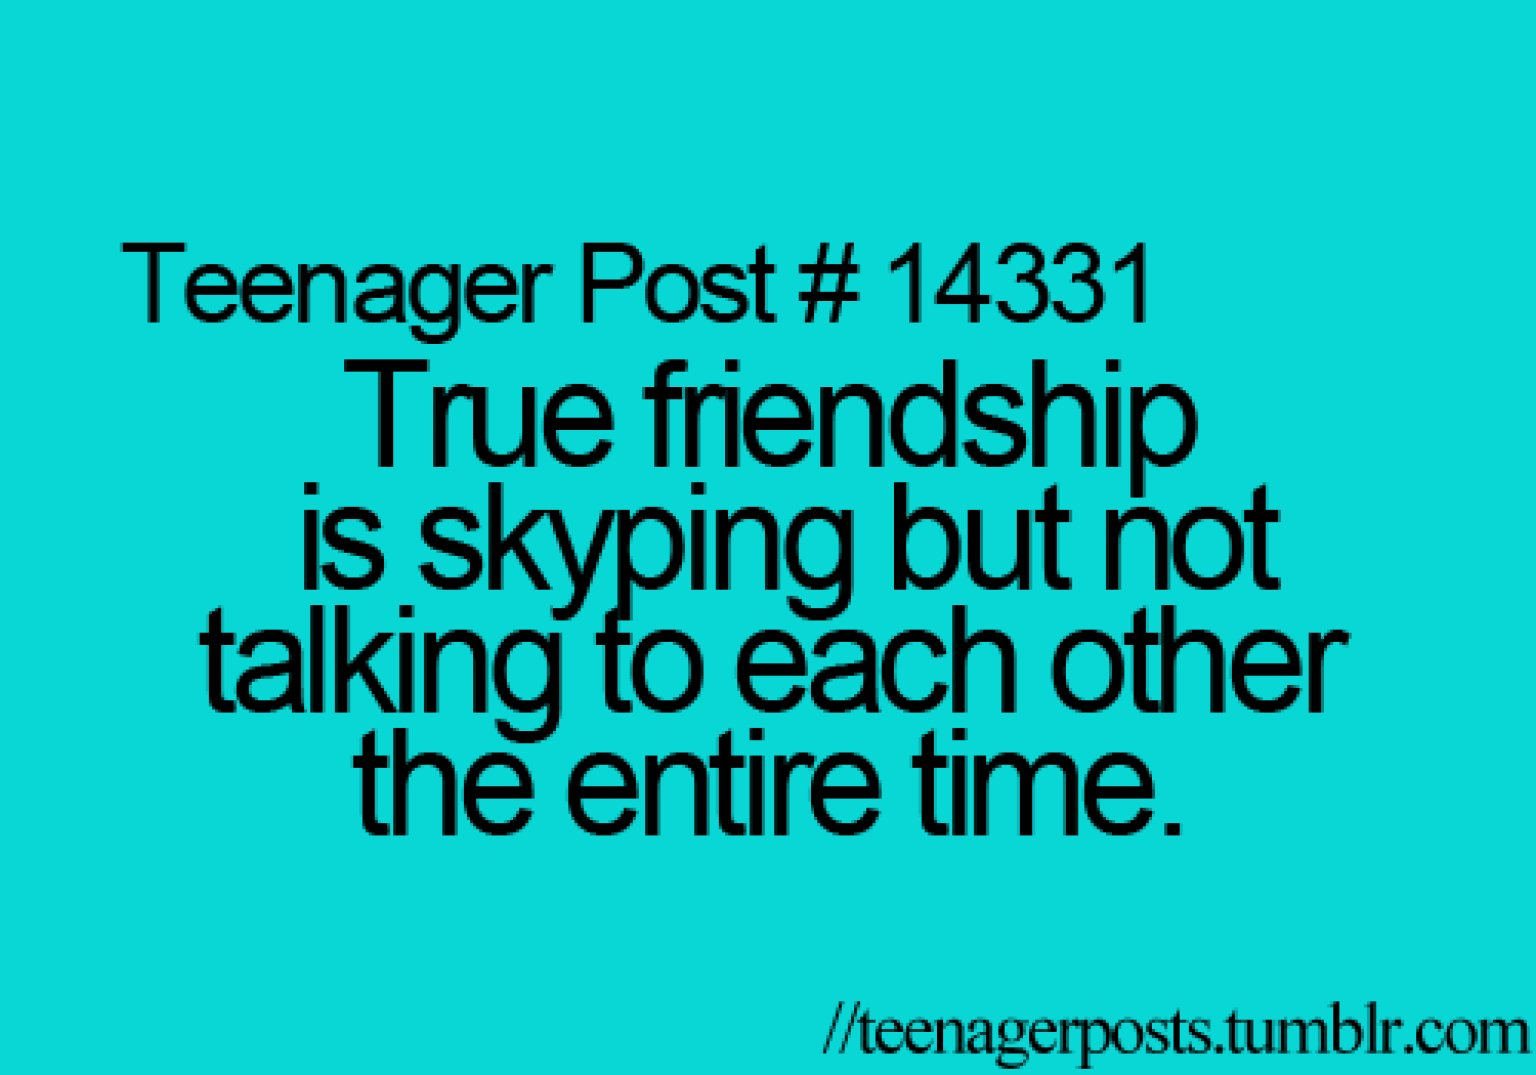 Teen Quotes Teenage Love Facebook : Teenager Posts Of The Week The True Definition Of Friendship And